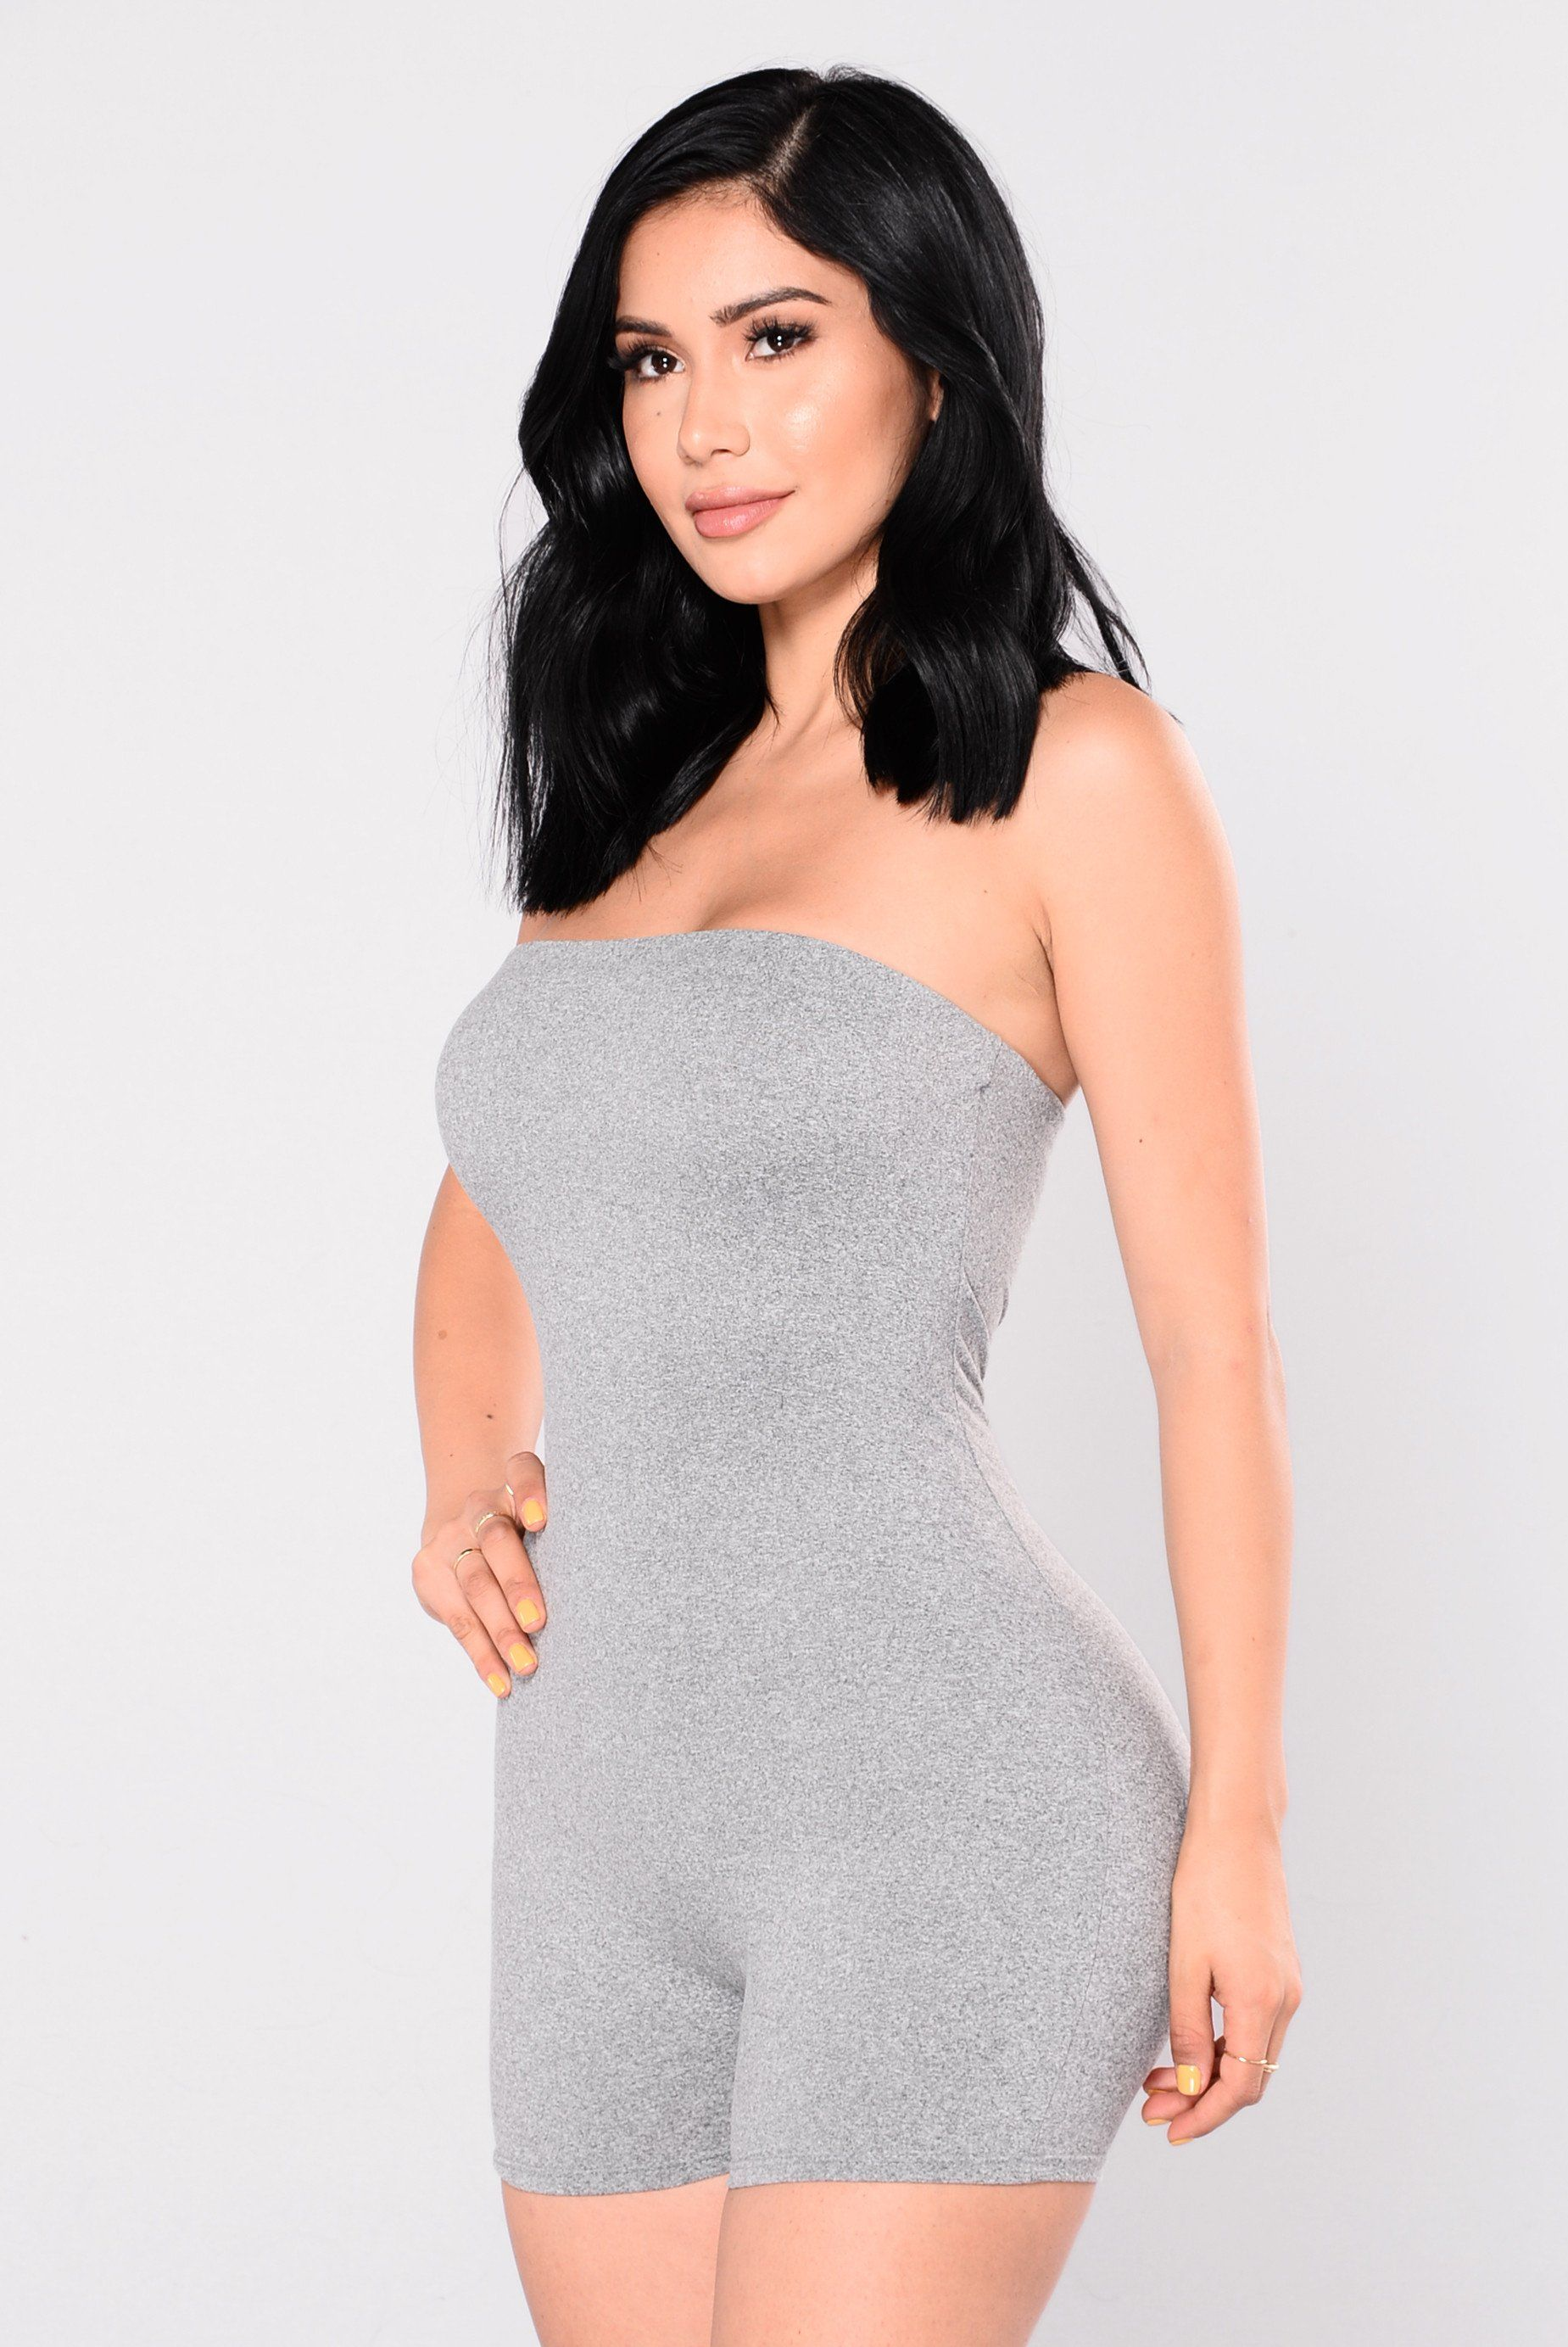 47d1c09039 Available In Grey And Black Tube Top Romper Elastic Top High Stretch 95%  Polyester